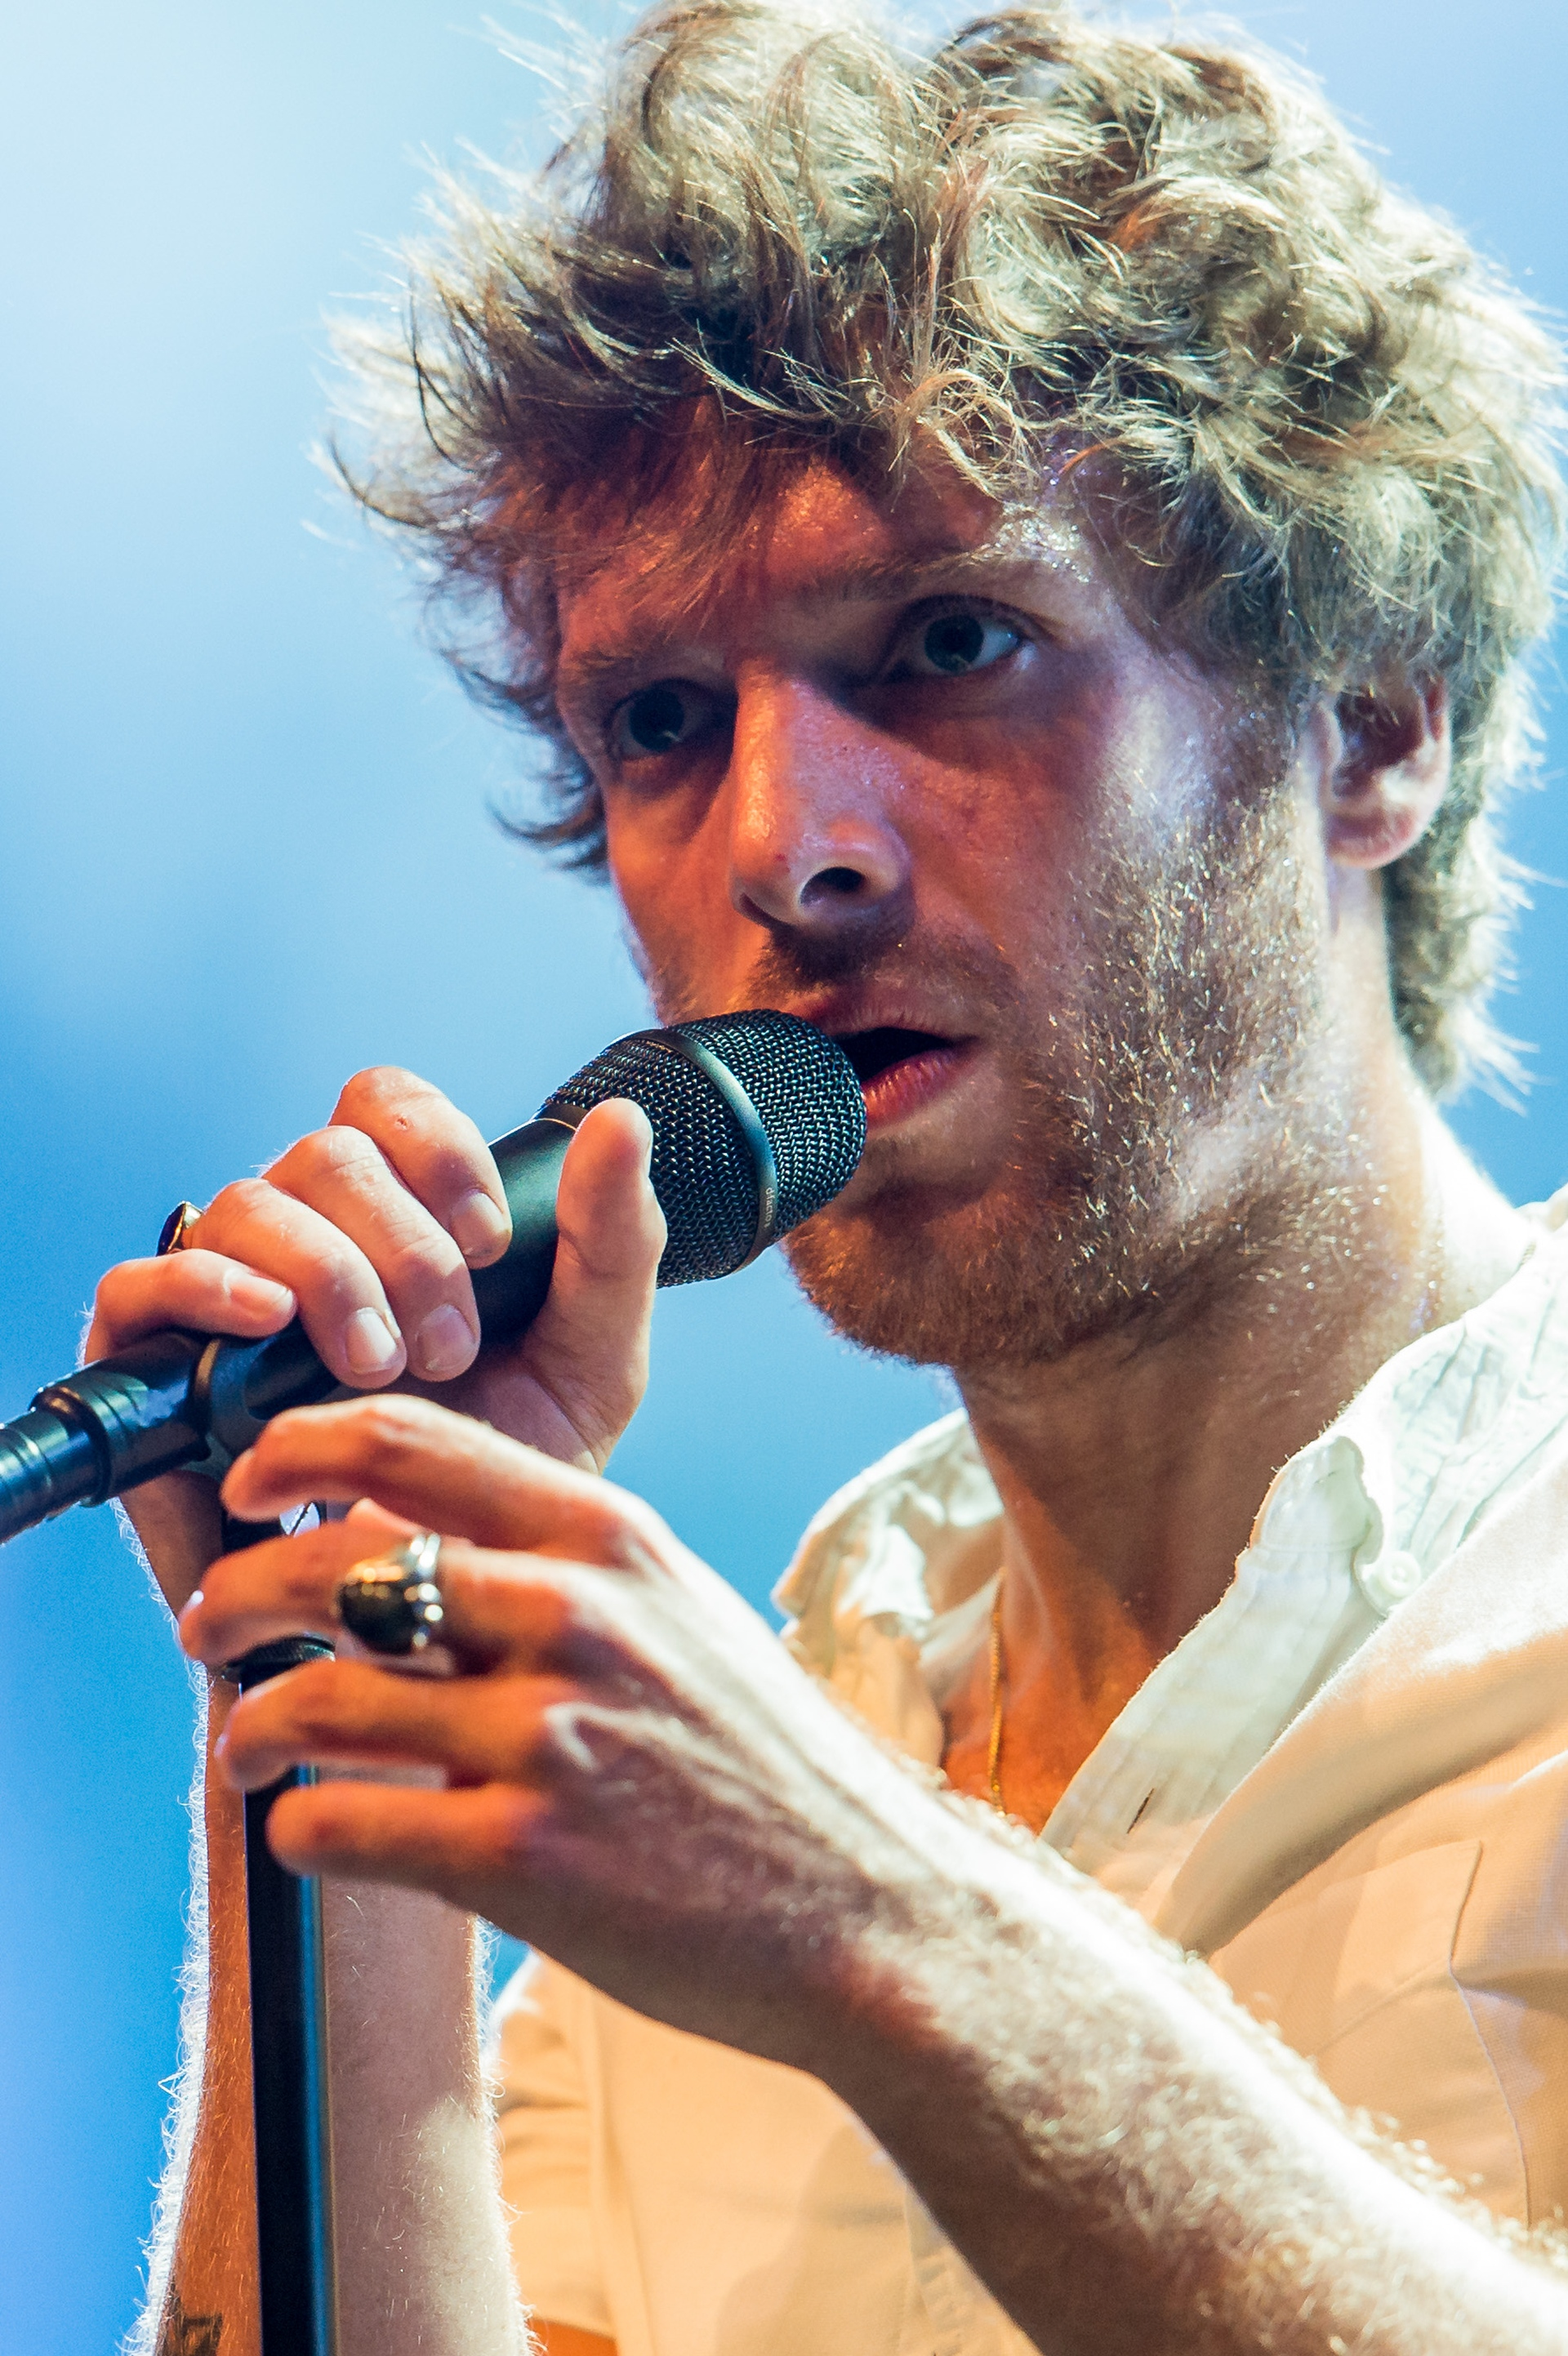 The 31-year old son of father Alfredo and mother Linda Paolo Nutini in 2018 photo. Paolo Nutini earned a  million dollar salary - leaving the net worth at 9 million in 2018